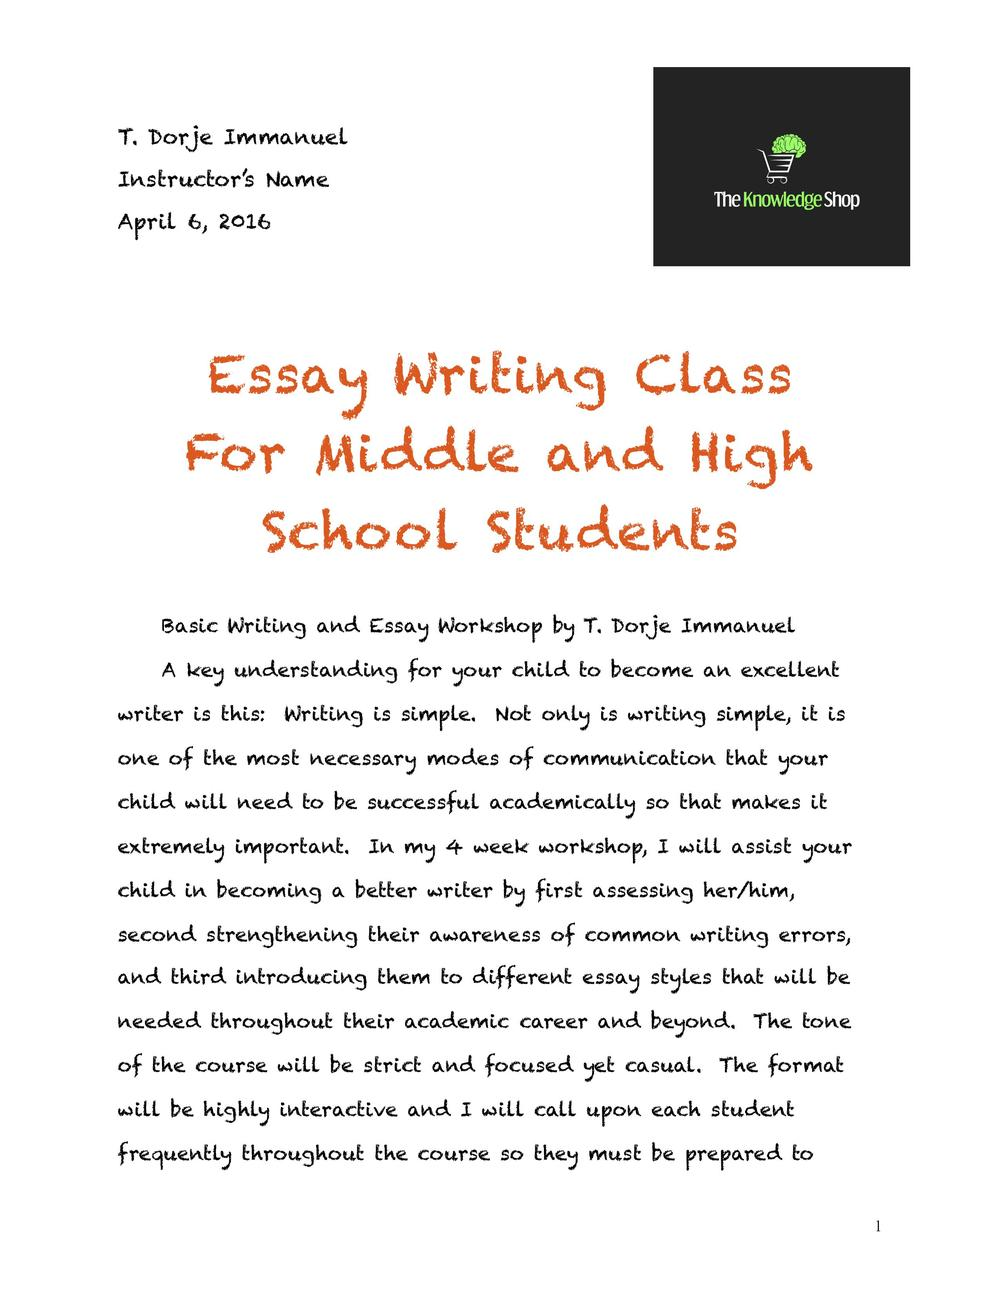 essay writing the knowledge shop la